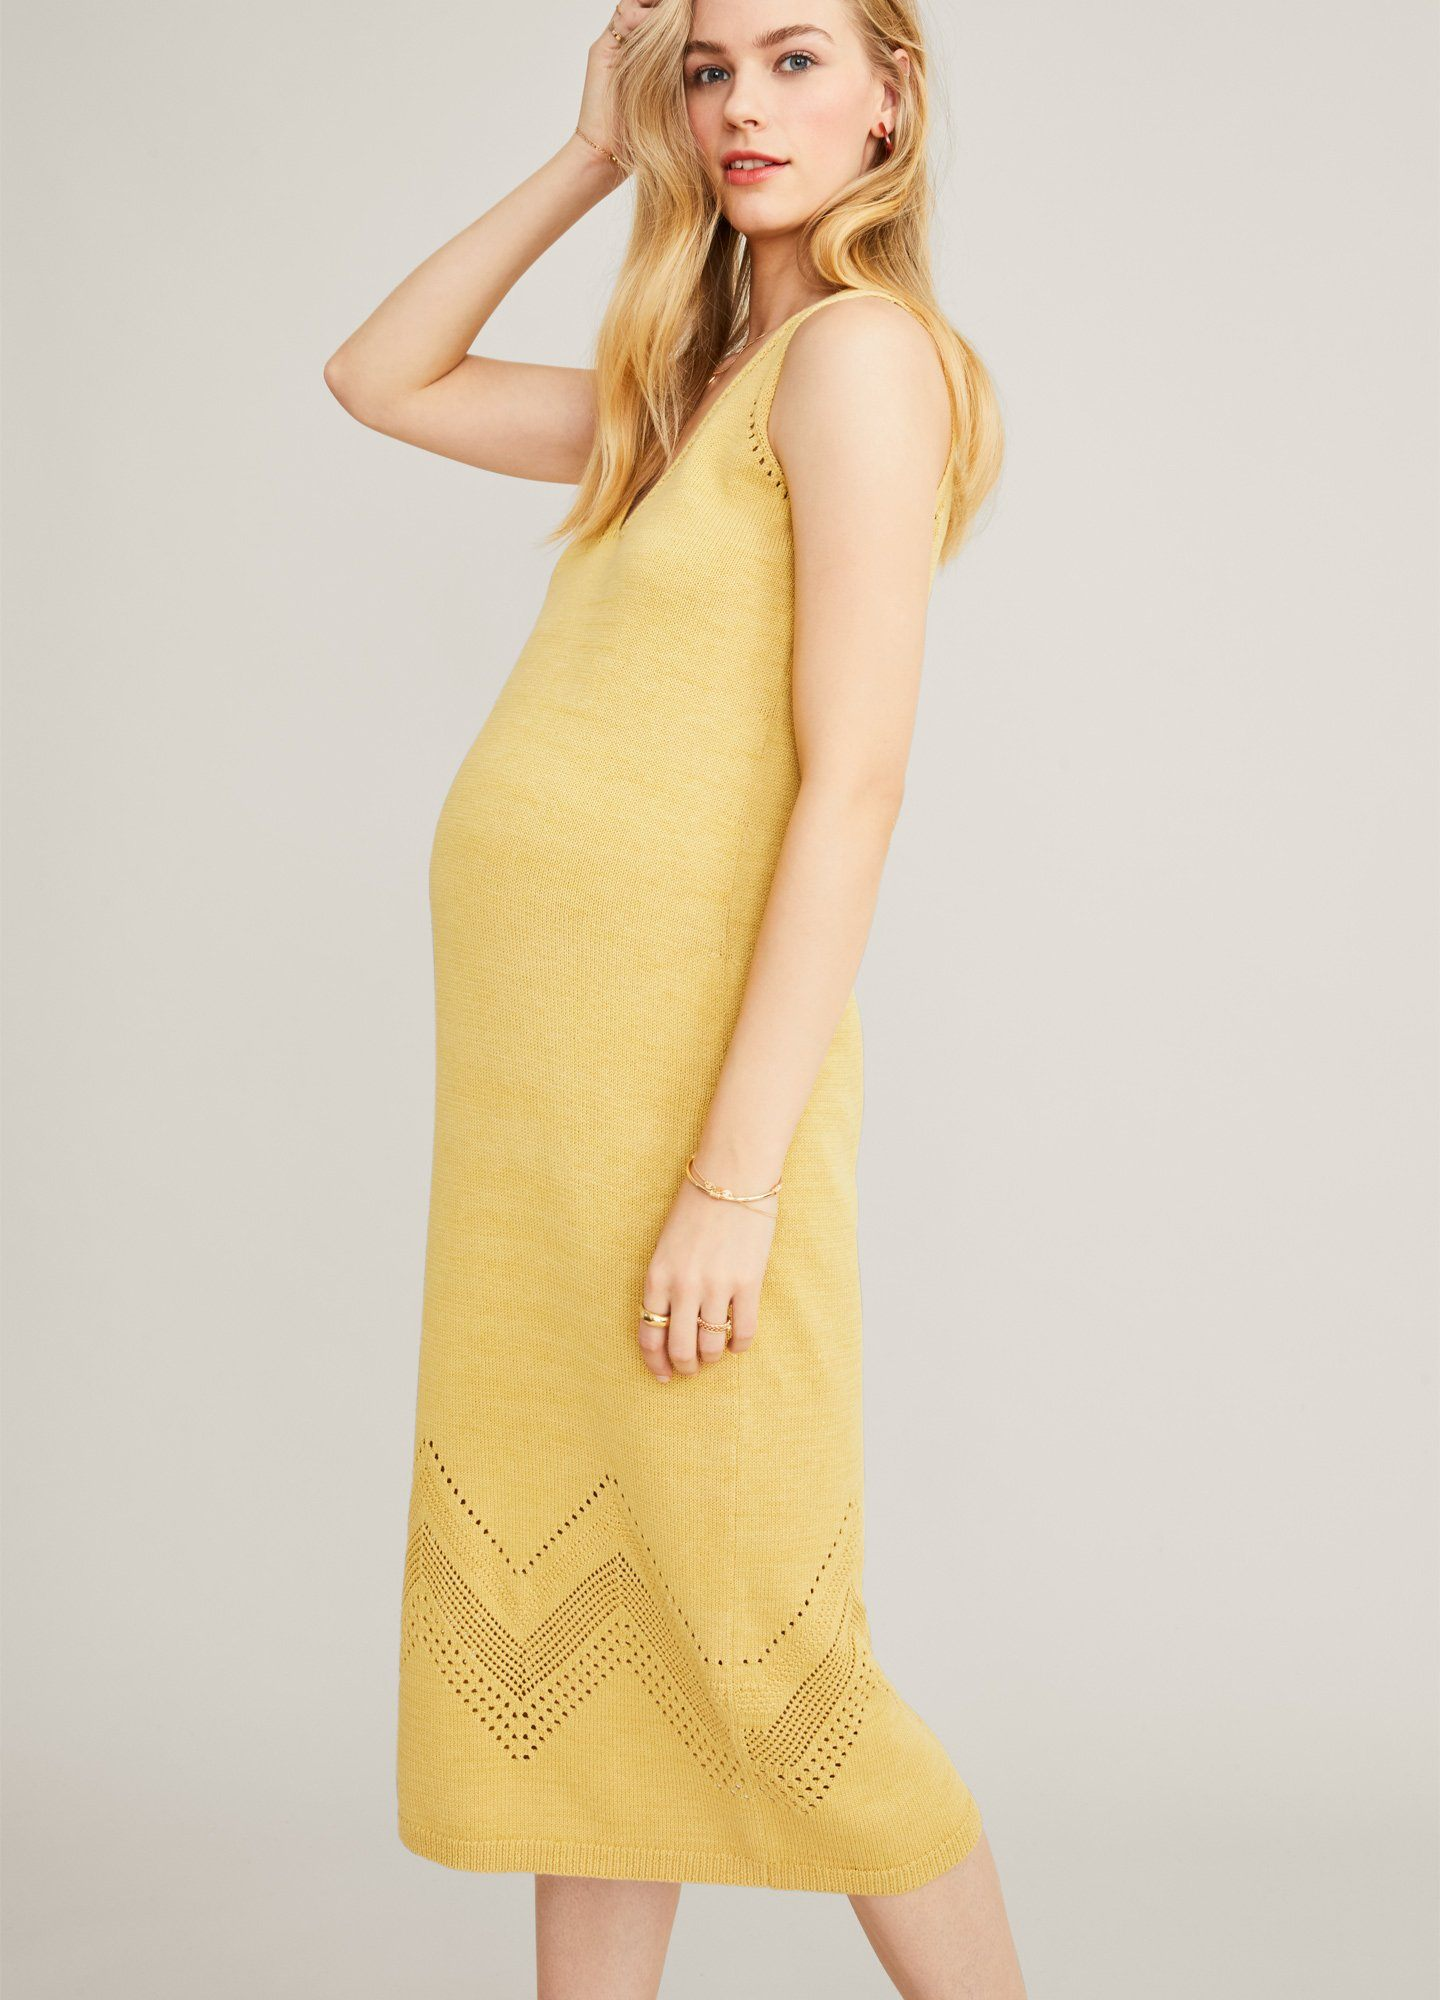 HATCH Maternity The Camilla Dress, Marigold, Size 2